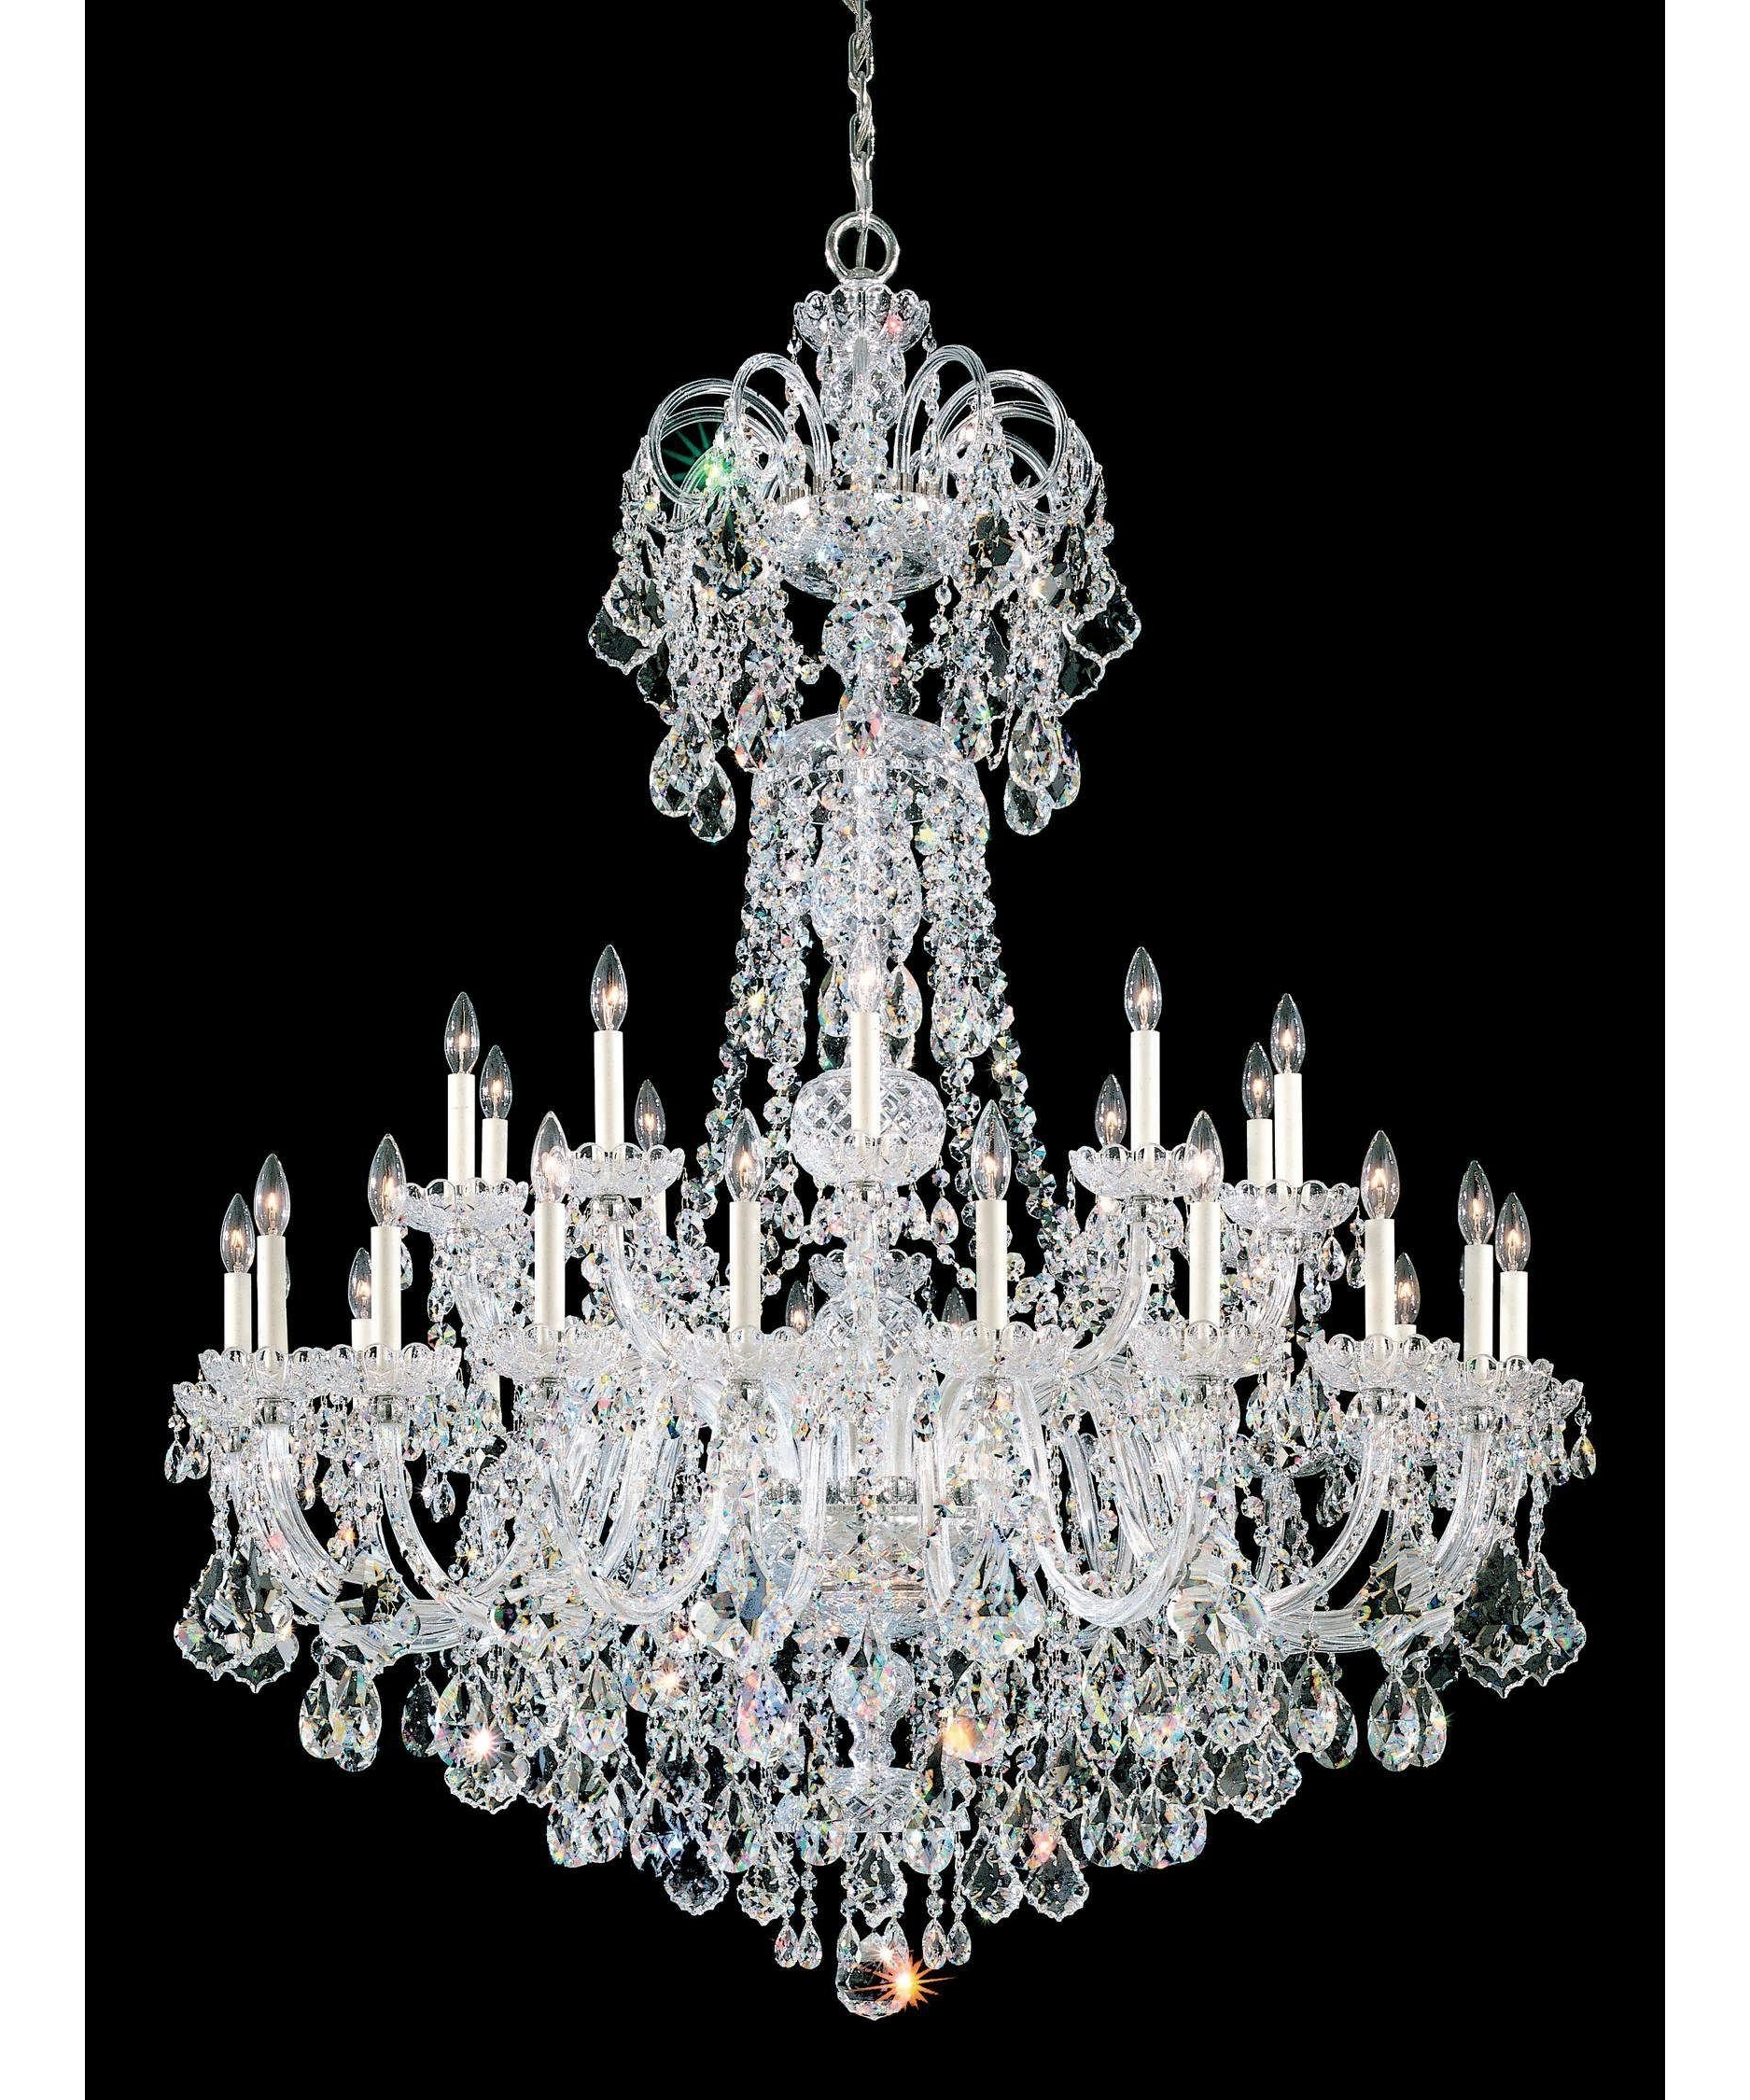 Small Shabby Chic Chandelier Within 2018 Chandeliers : Shabby Chic Chandelier Elegant Chandelier Small (View 12 of 15)